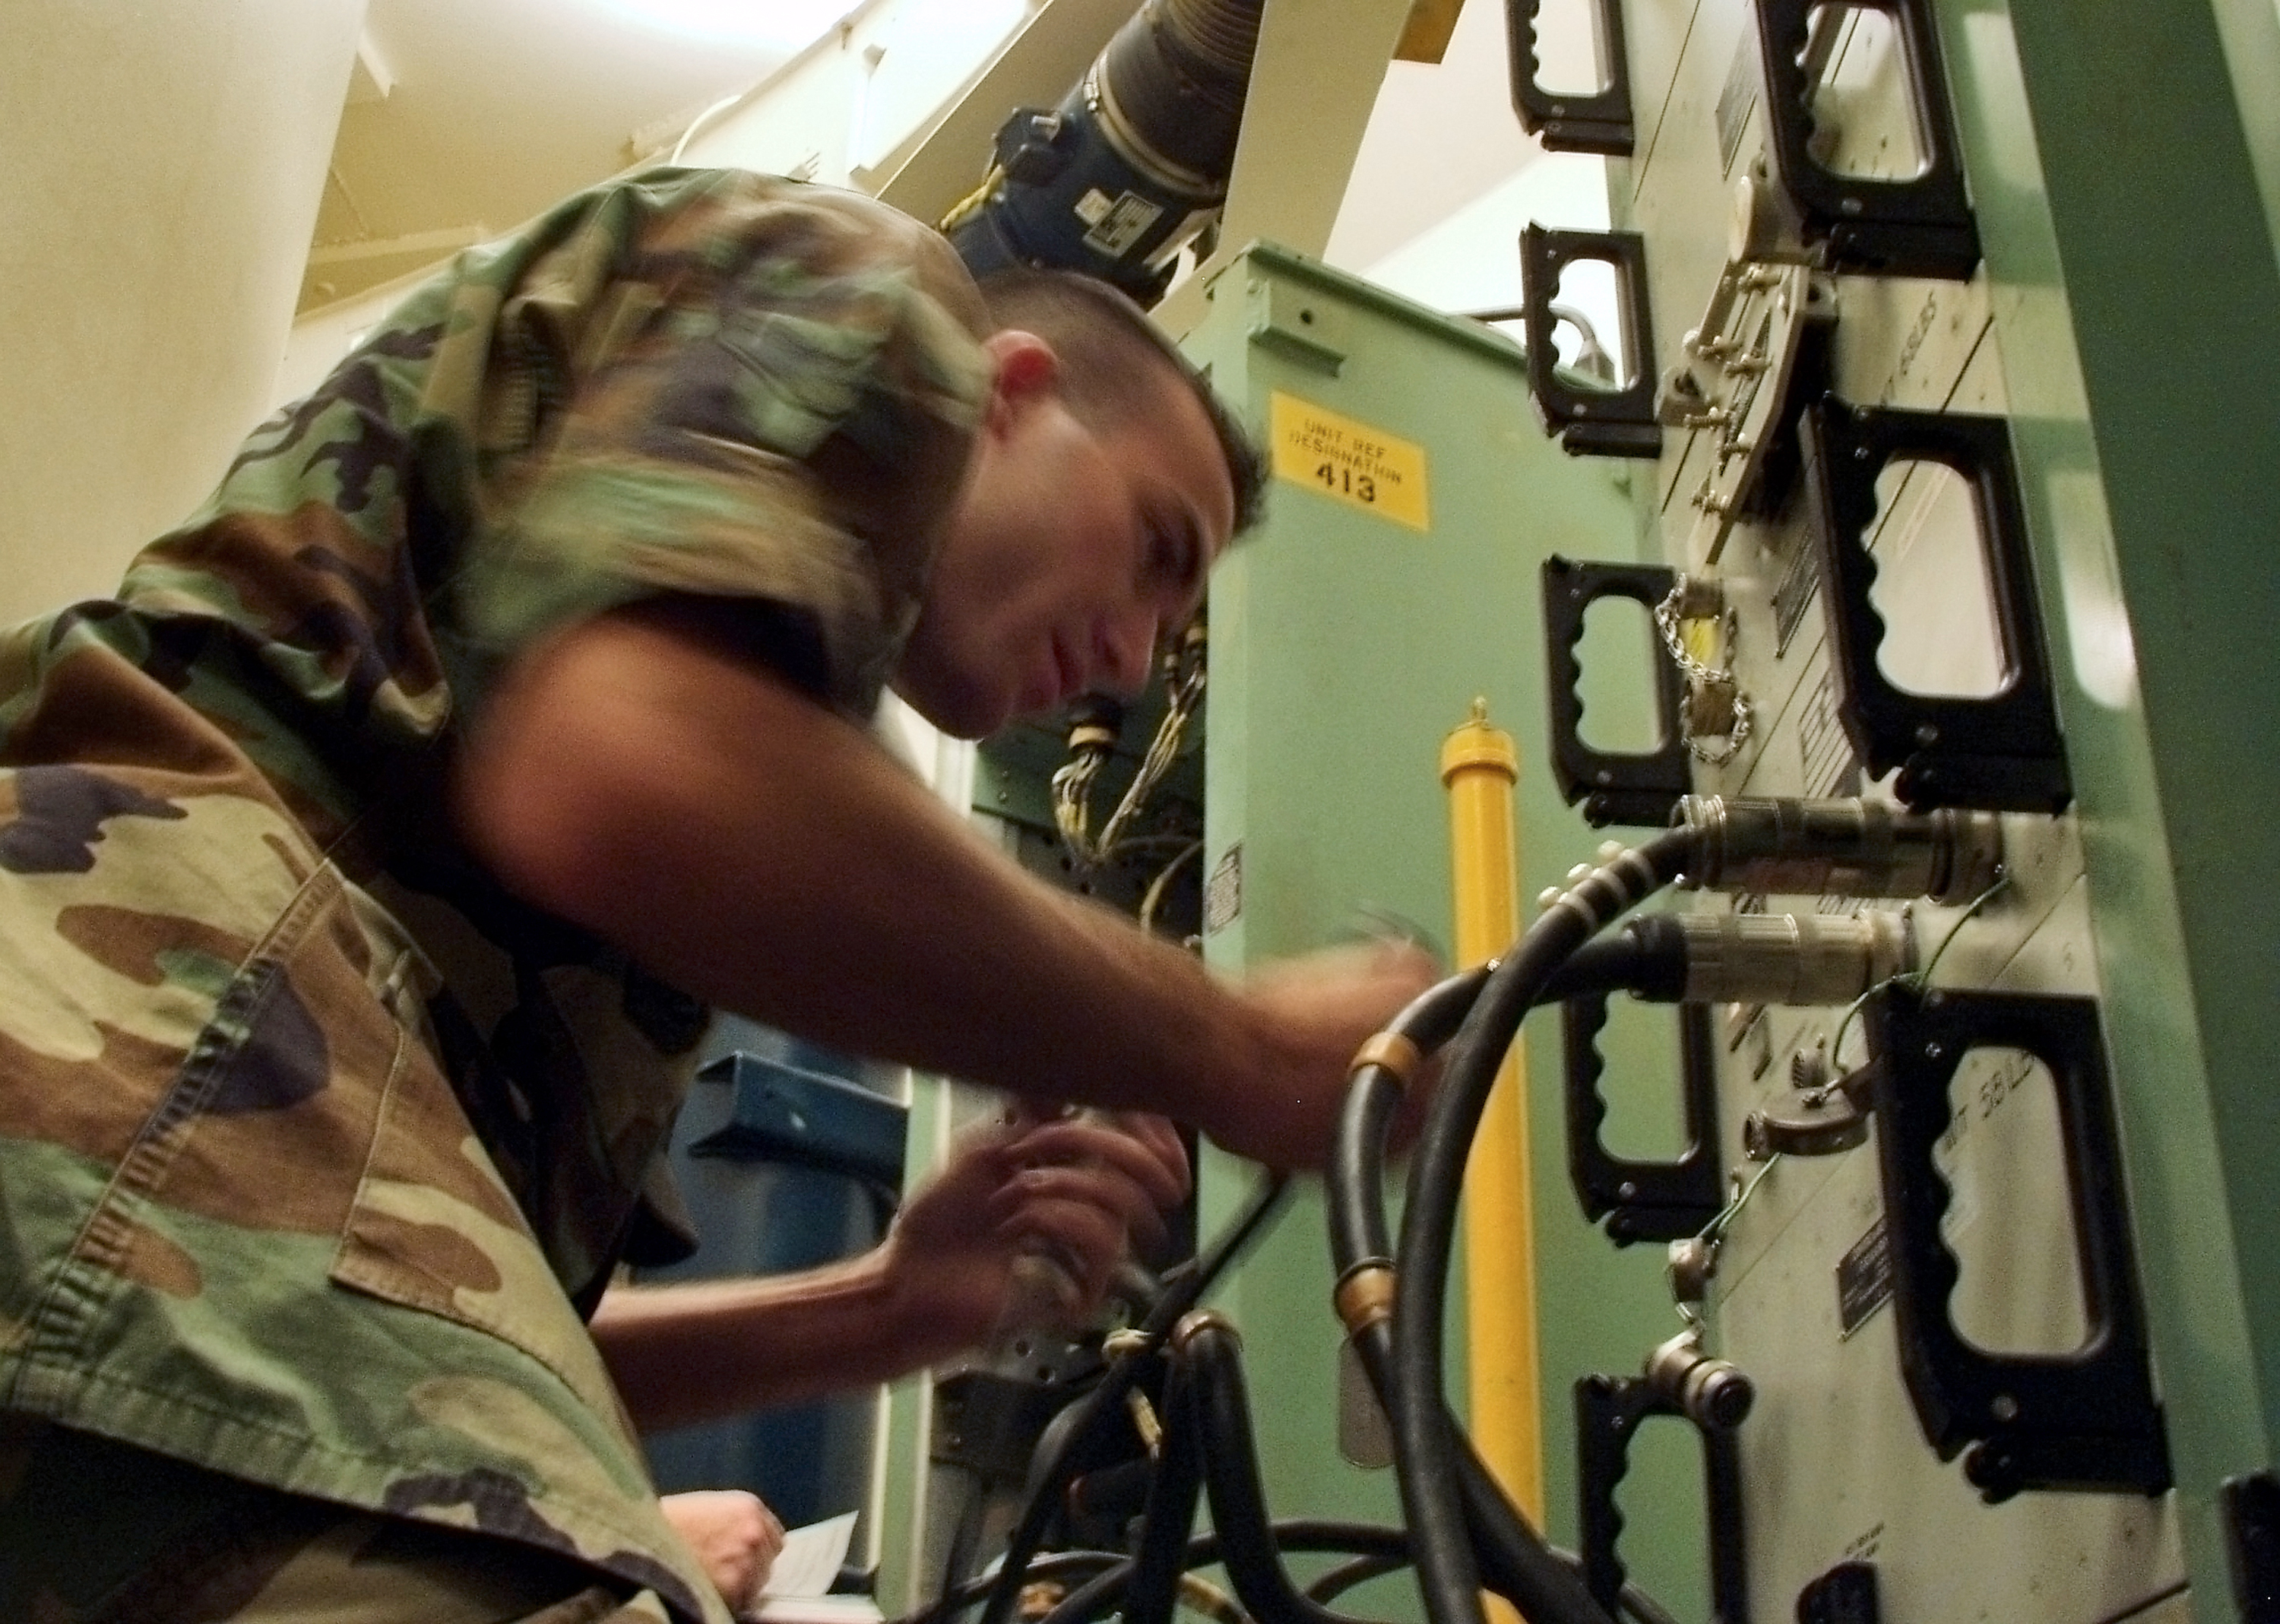 Beyond the missileers, thousands of enlisted airmen like Airman 1st Class Matthew Lahood tend to the constant maintenance the Minuteman missile force requires.